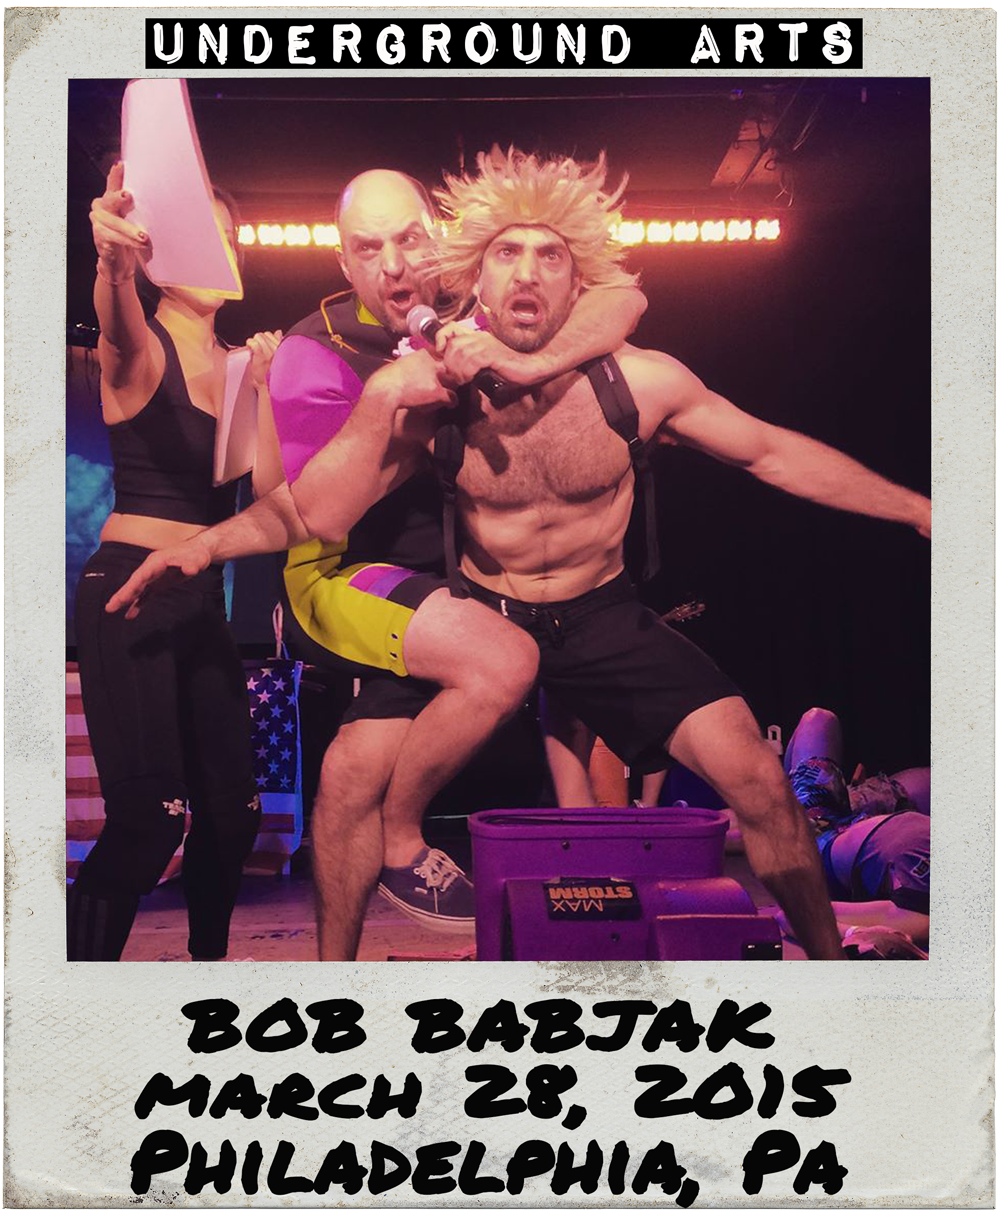 03_28_15_Bob-Babjak_Underground-Arts_Philly.png